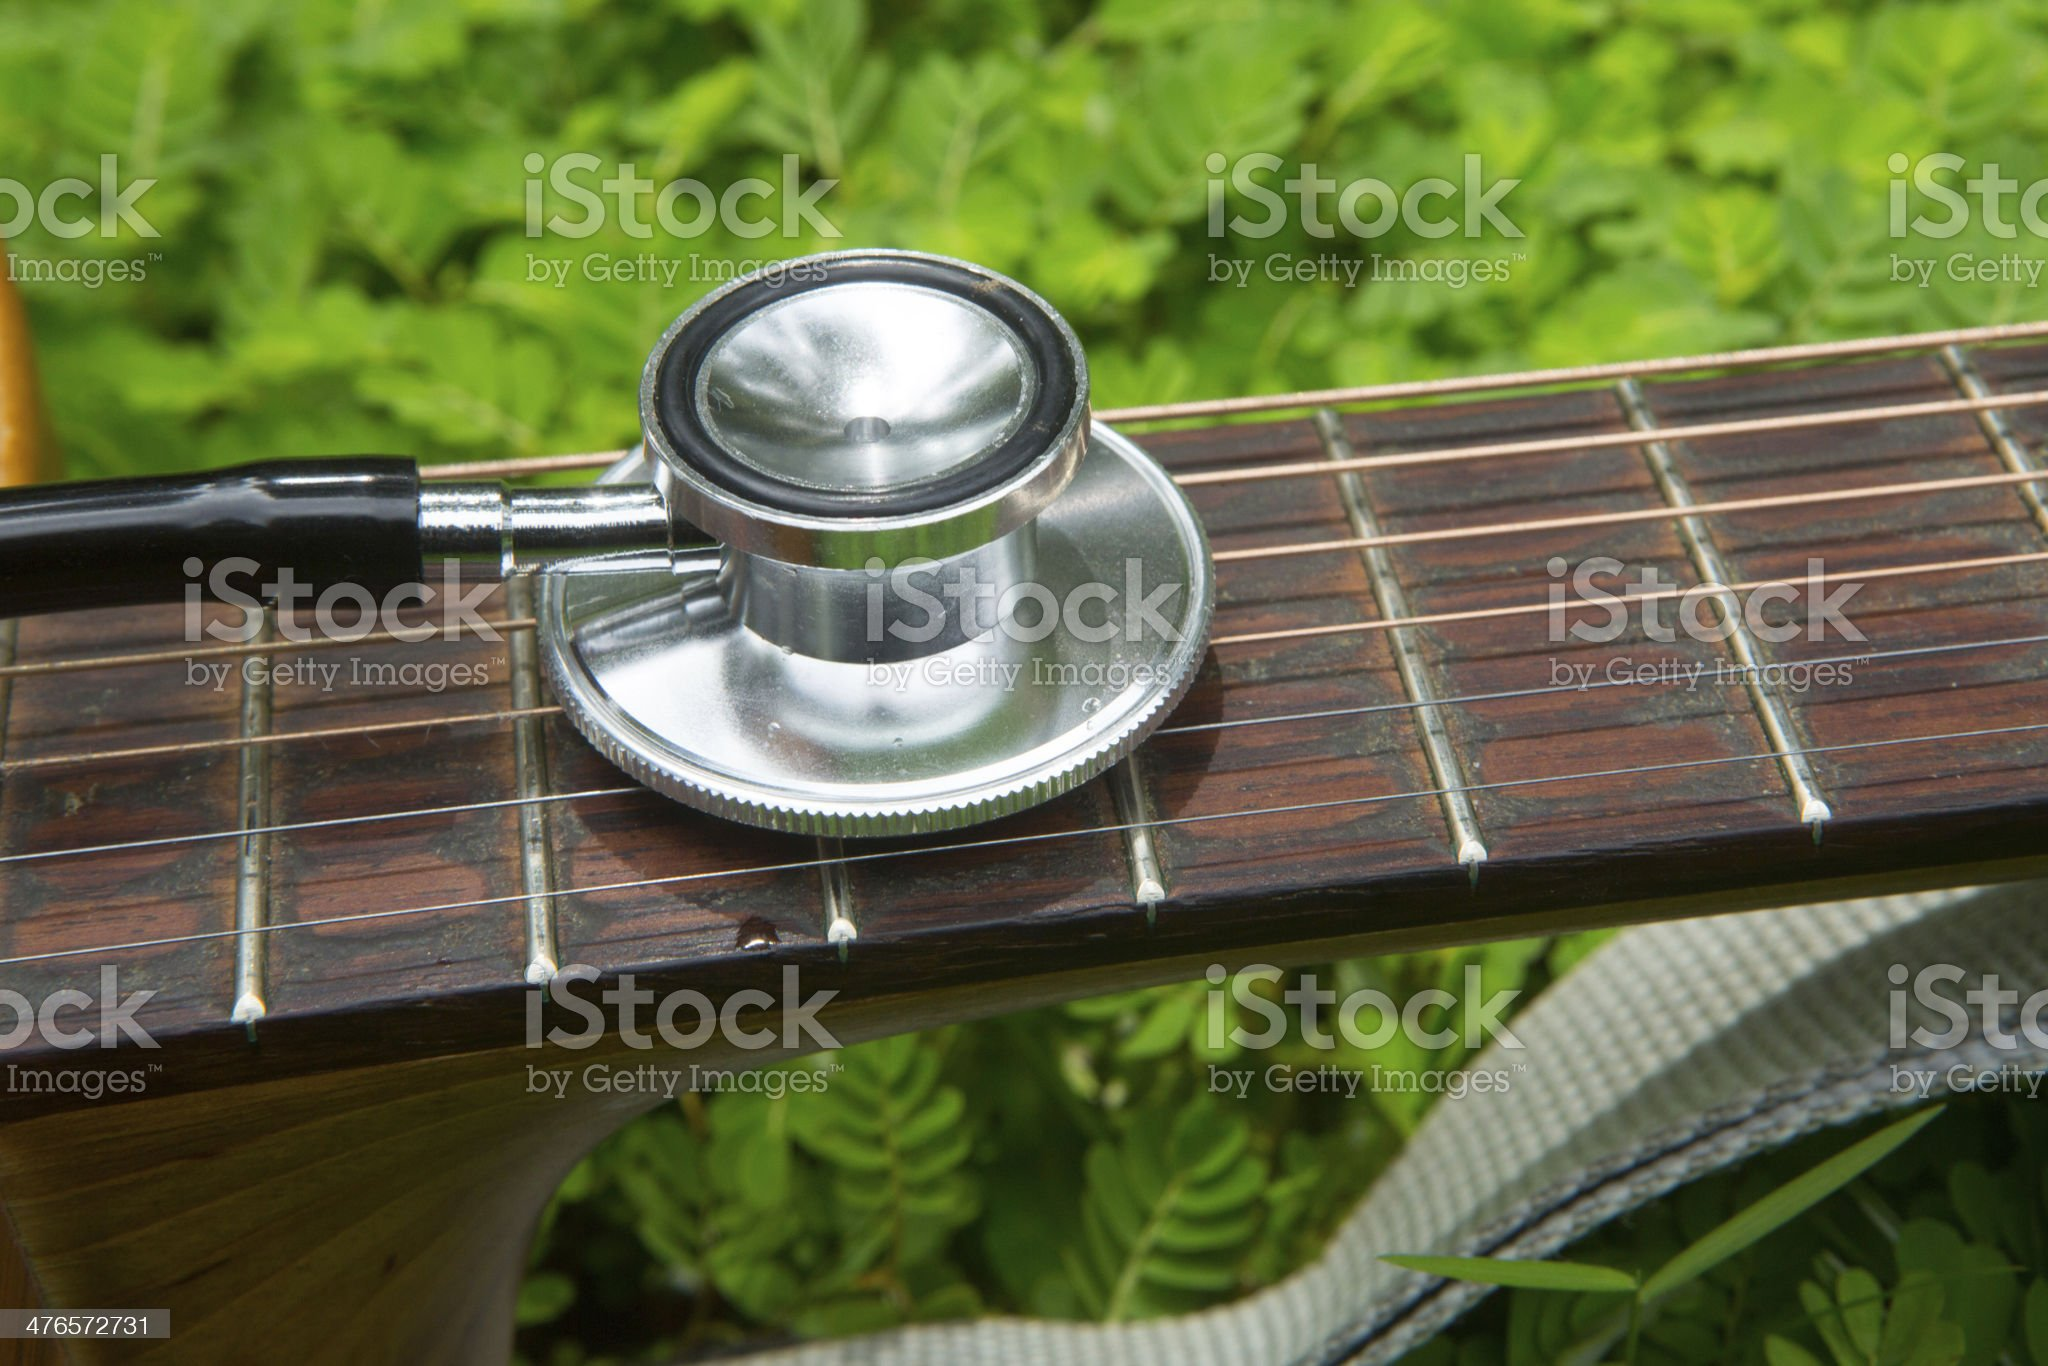 Health and Music royalty-free stock photo